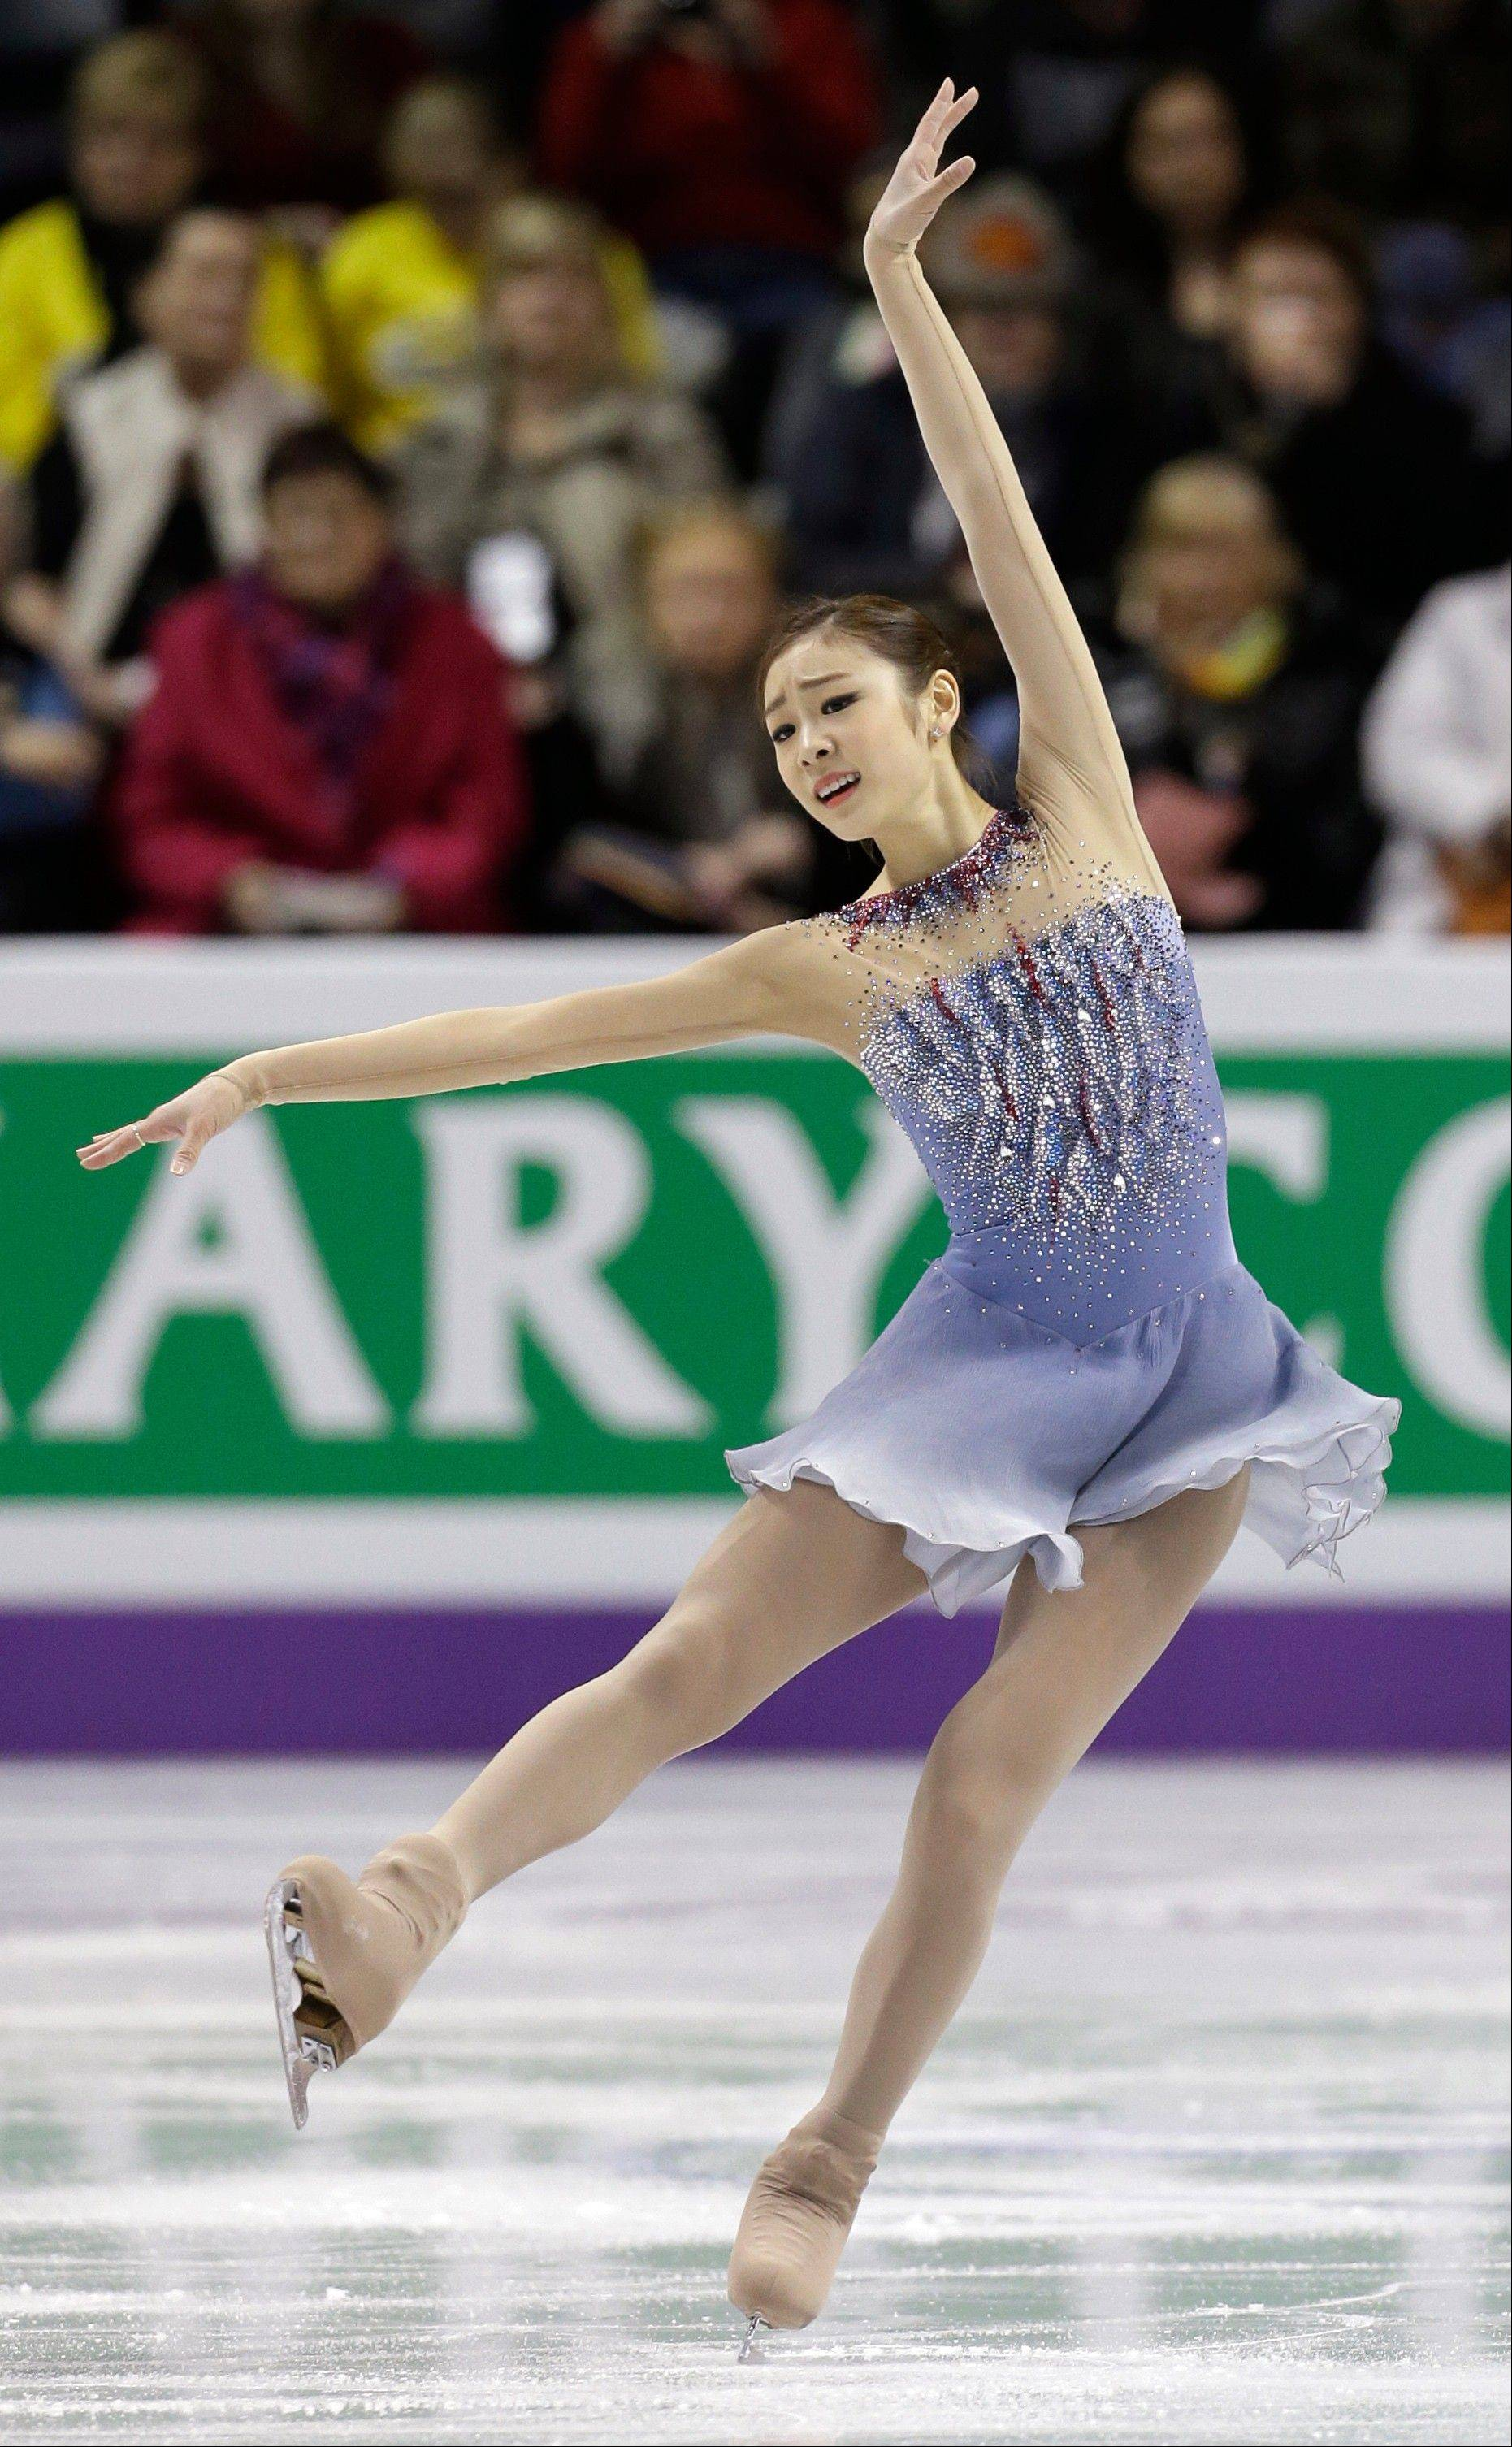 Kim Yu-na of South Korea performs during the ladies short program at the World Figure Skating Championships Thursday, March 14, 2013, in London, Ontario. (AP Photo/Darron Cummings)